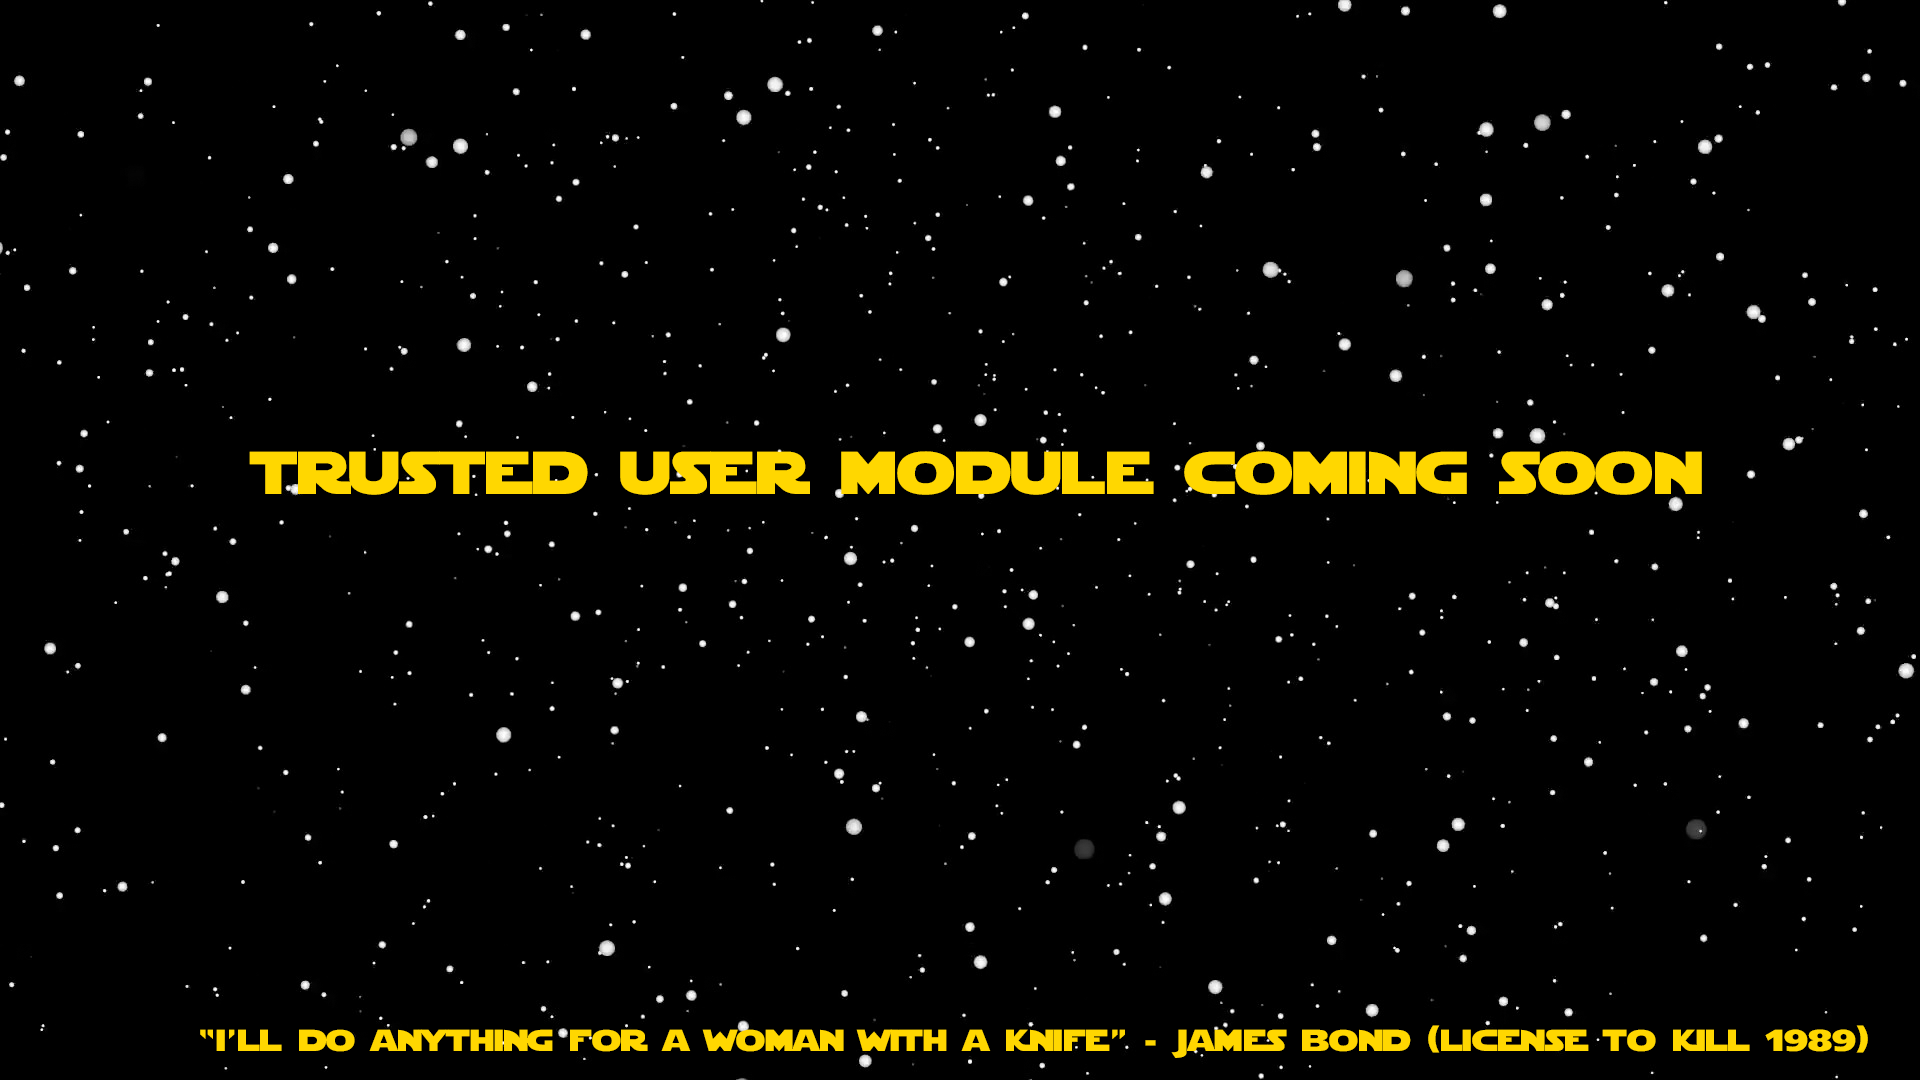 trusted_user_module_coming_soon